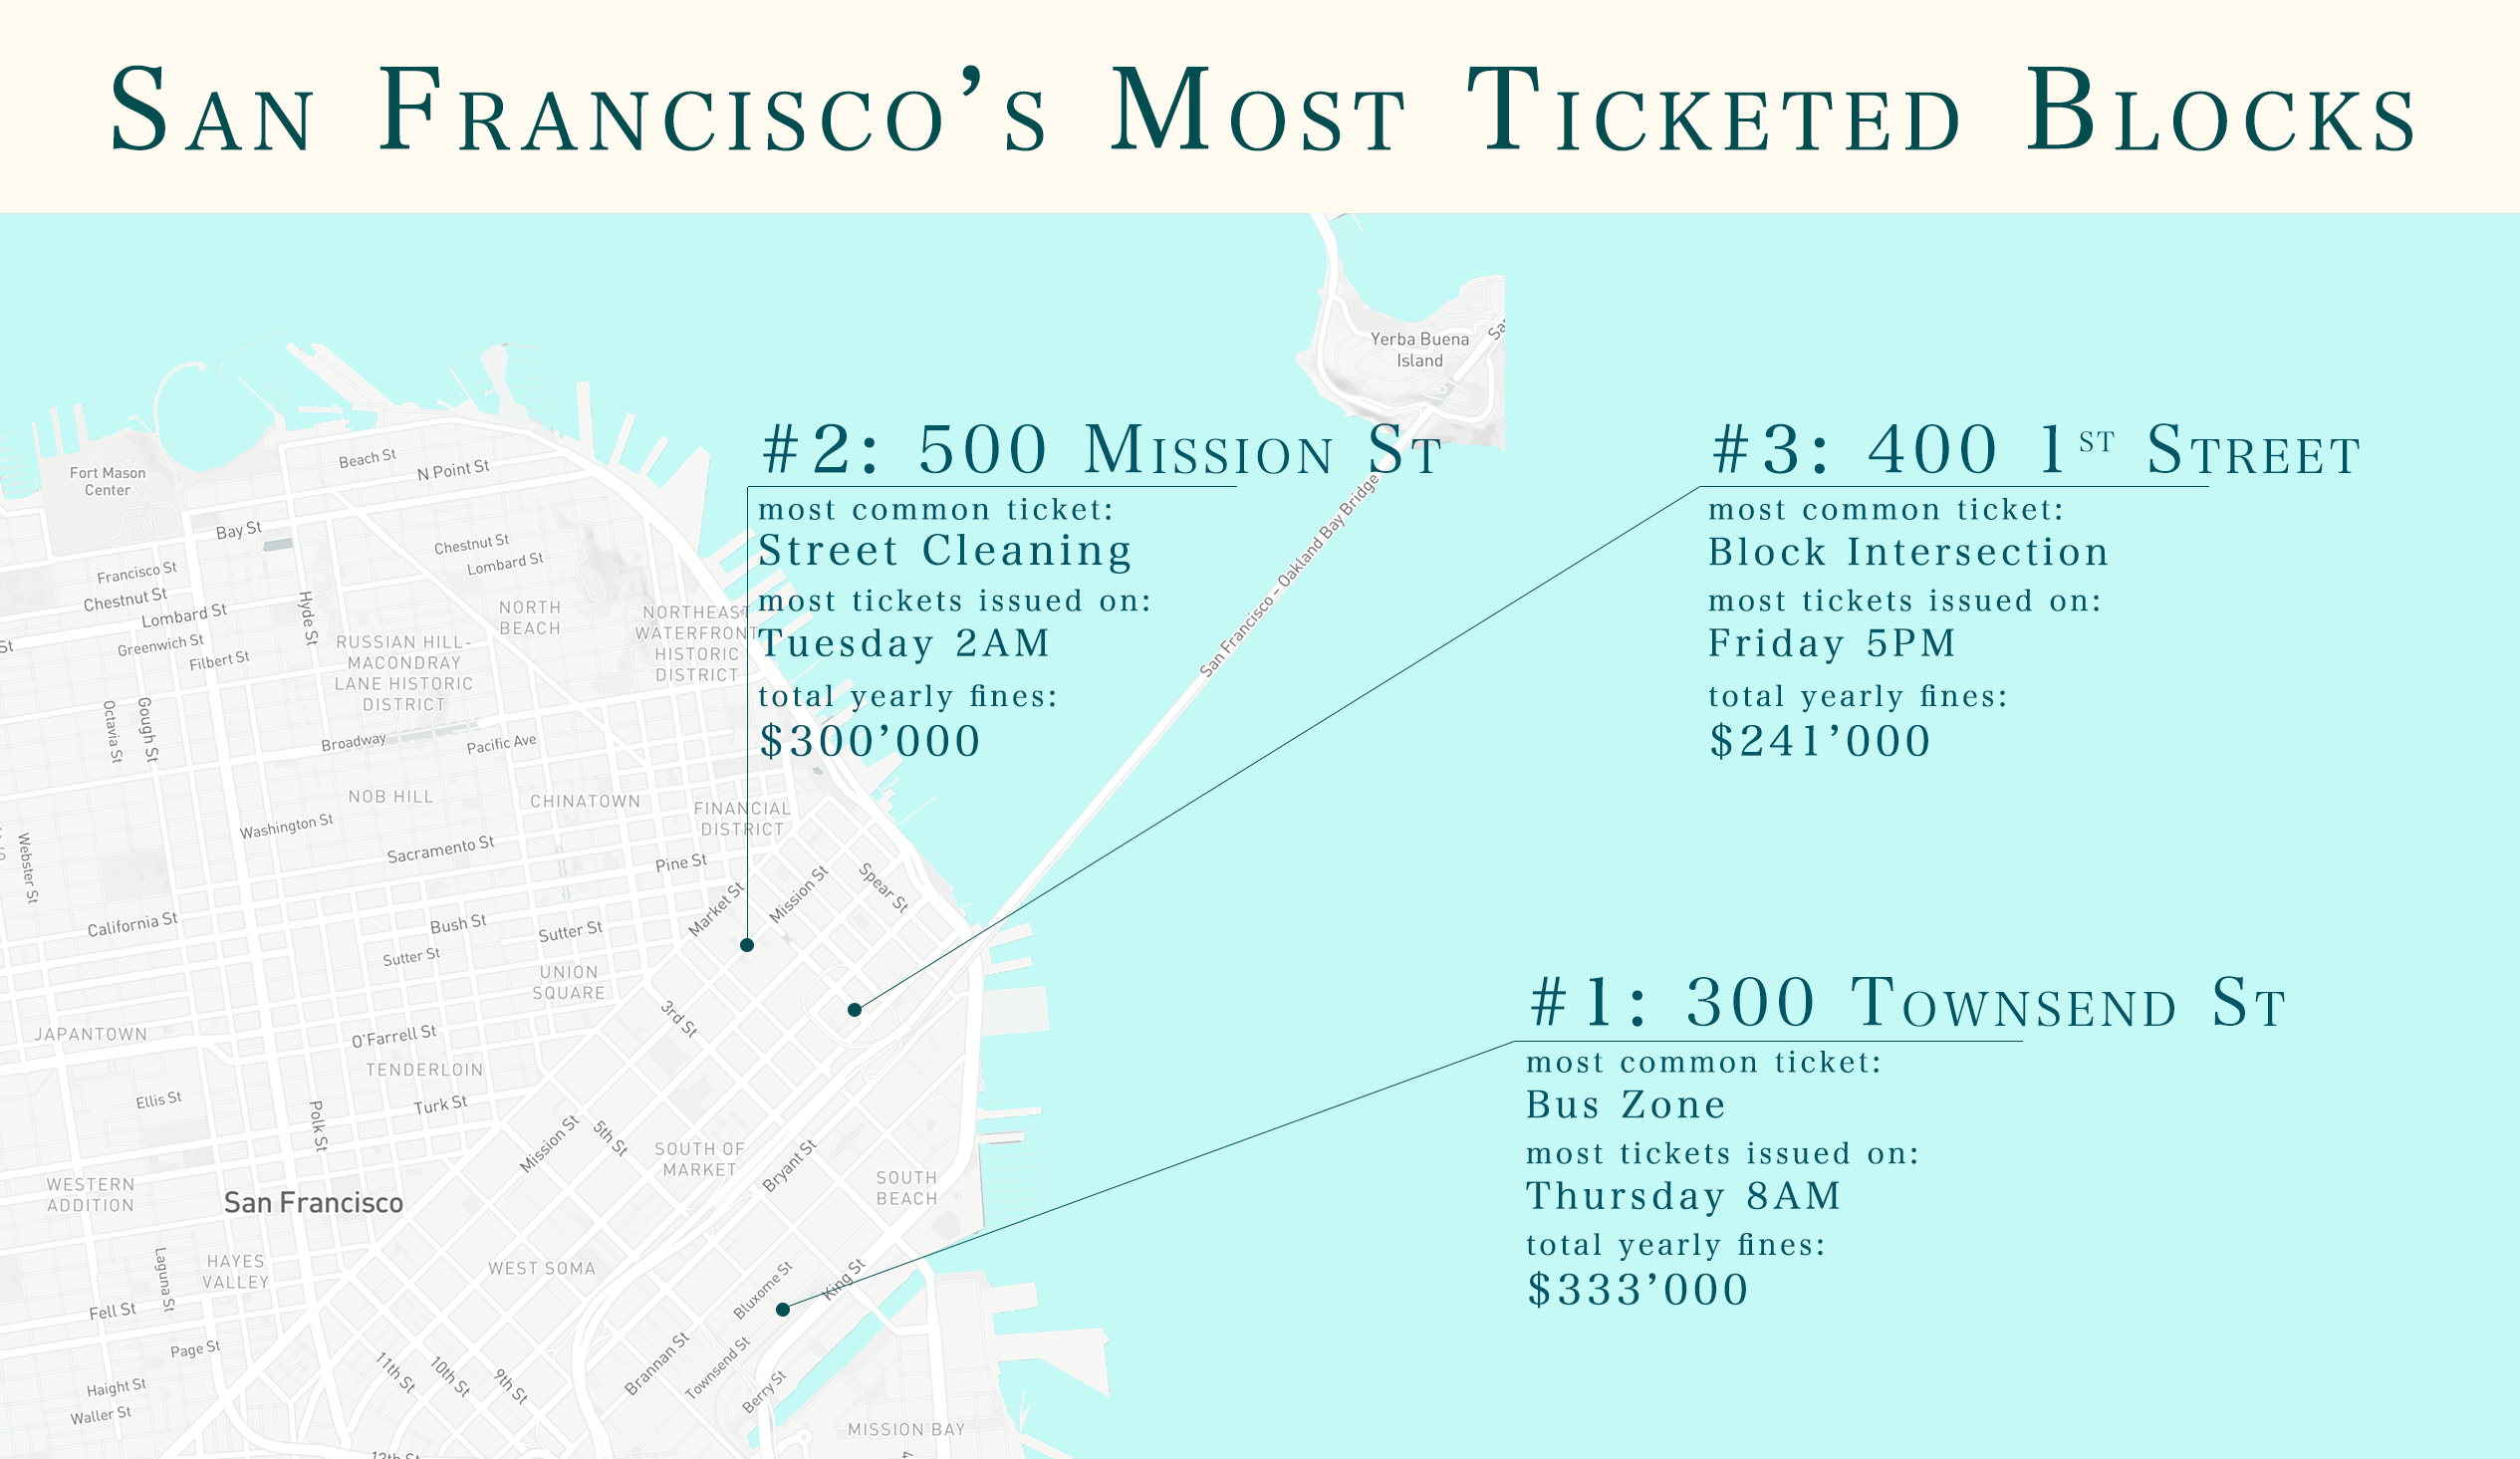 SF Most Ticketed Blocks